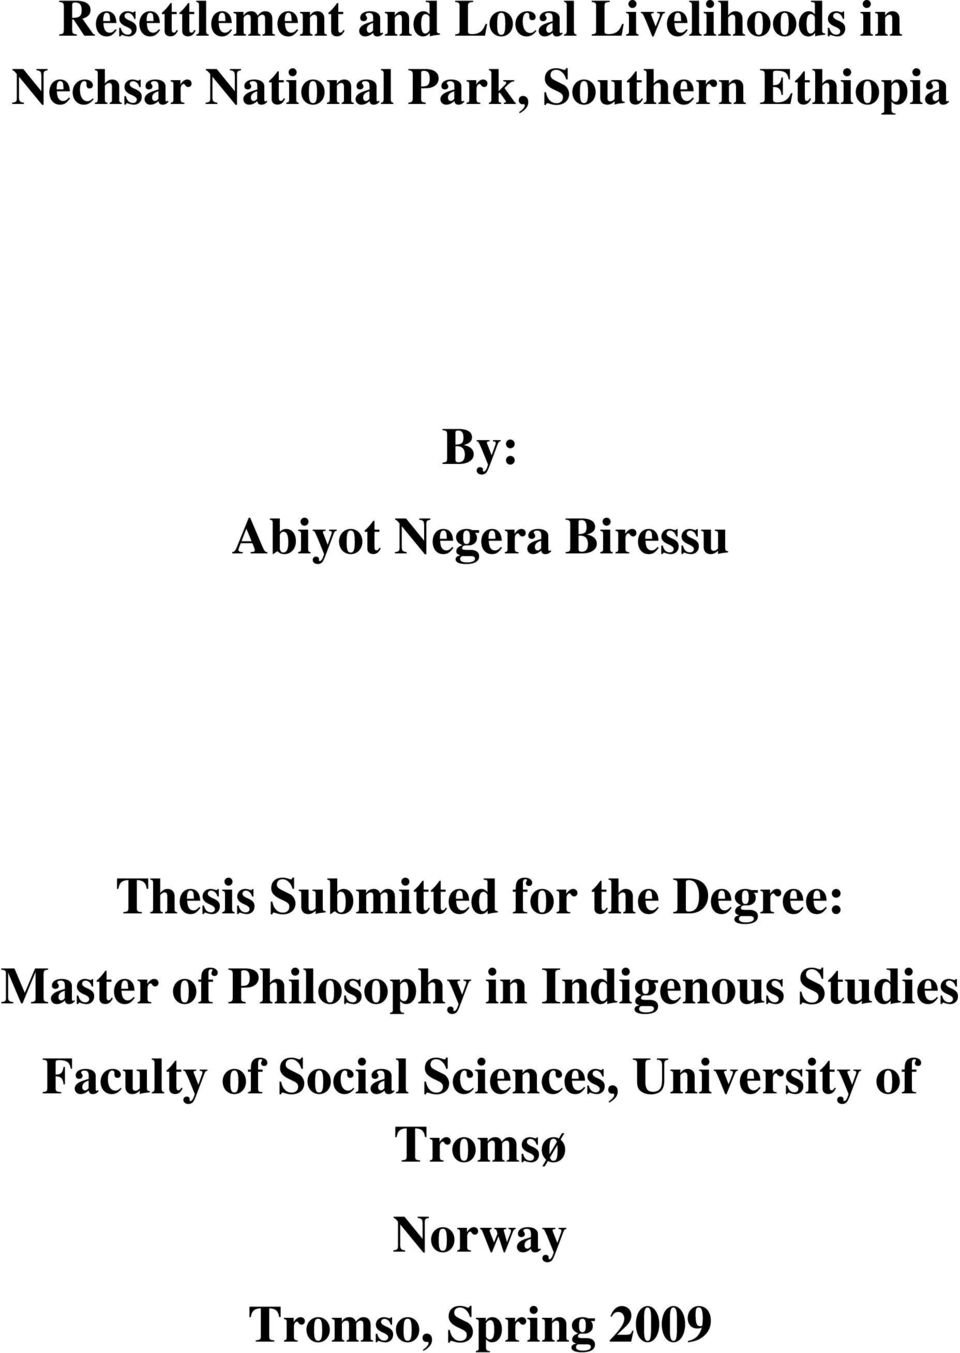 for the Degree: Master of Philosophy in Indigenous Studies